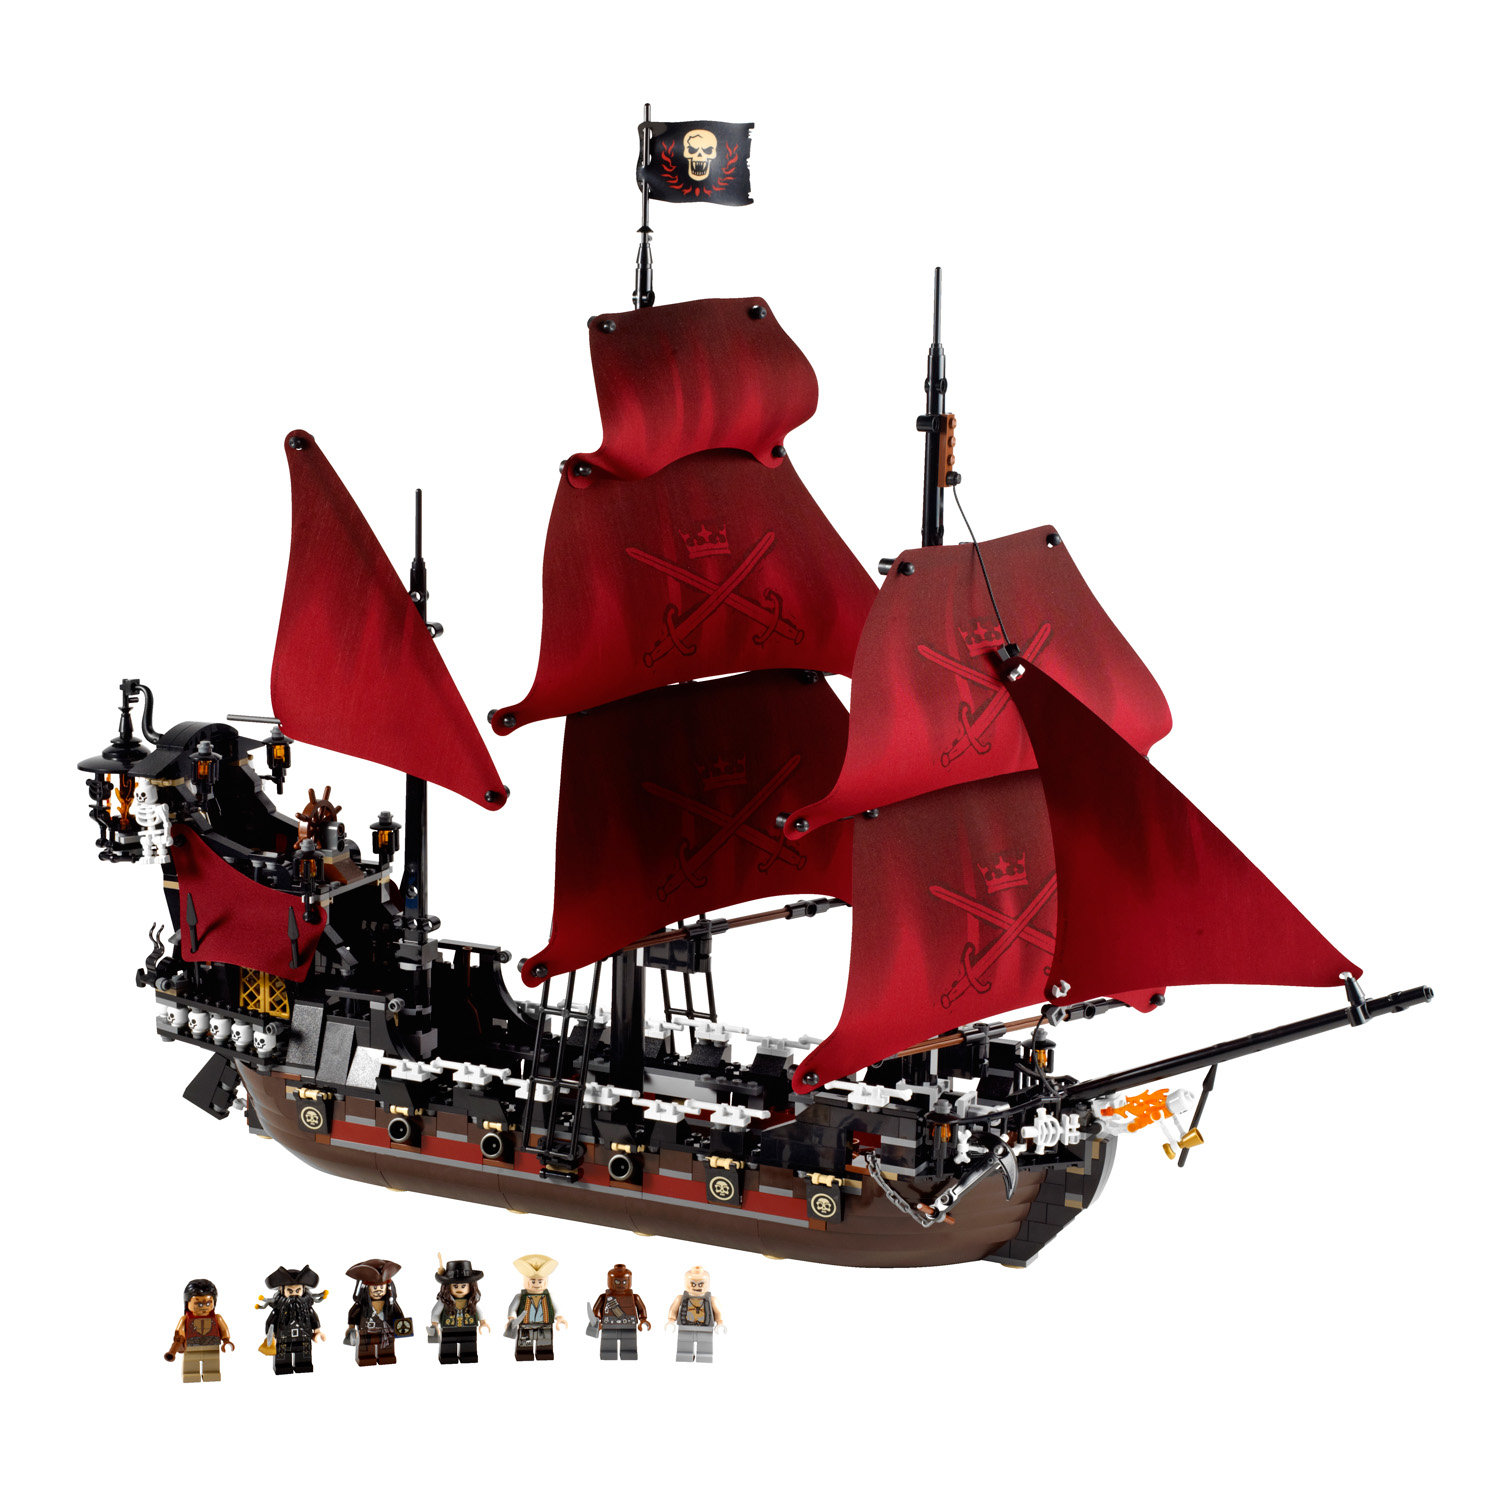 11 product ratings - LEGO Pirates The Brick Bounty Pirate Ship () New in Sealed Box Building Toy $ Trending at $ Trending price is based on prices over last 90 days.